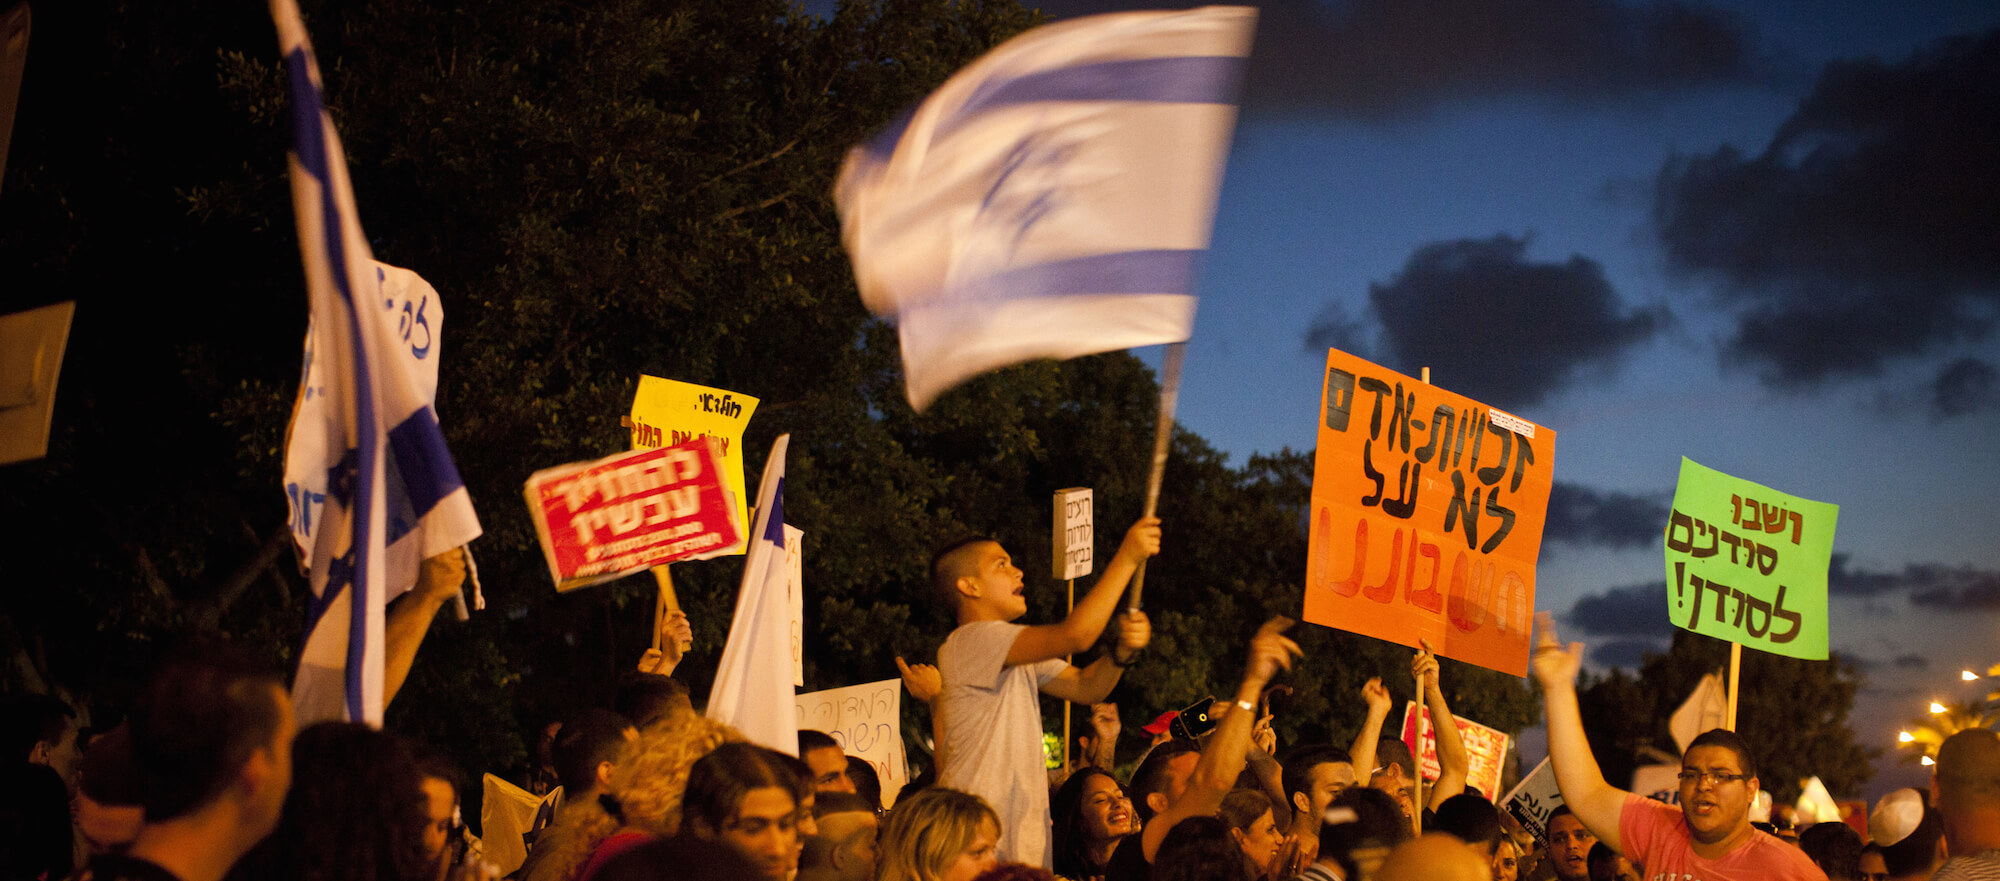 """Israelis chant """"Sudanese Back To Sudan"""" during a right-wing demonstration against African refugees in south Tel Aviv, 30 May 2012. (Photo: Oren Ziv / ActiveStills)"""